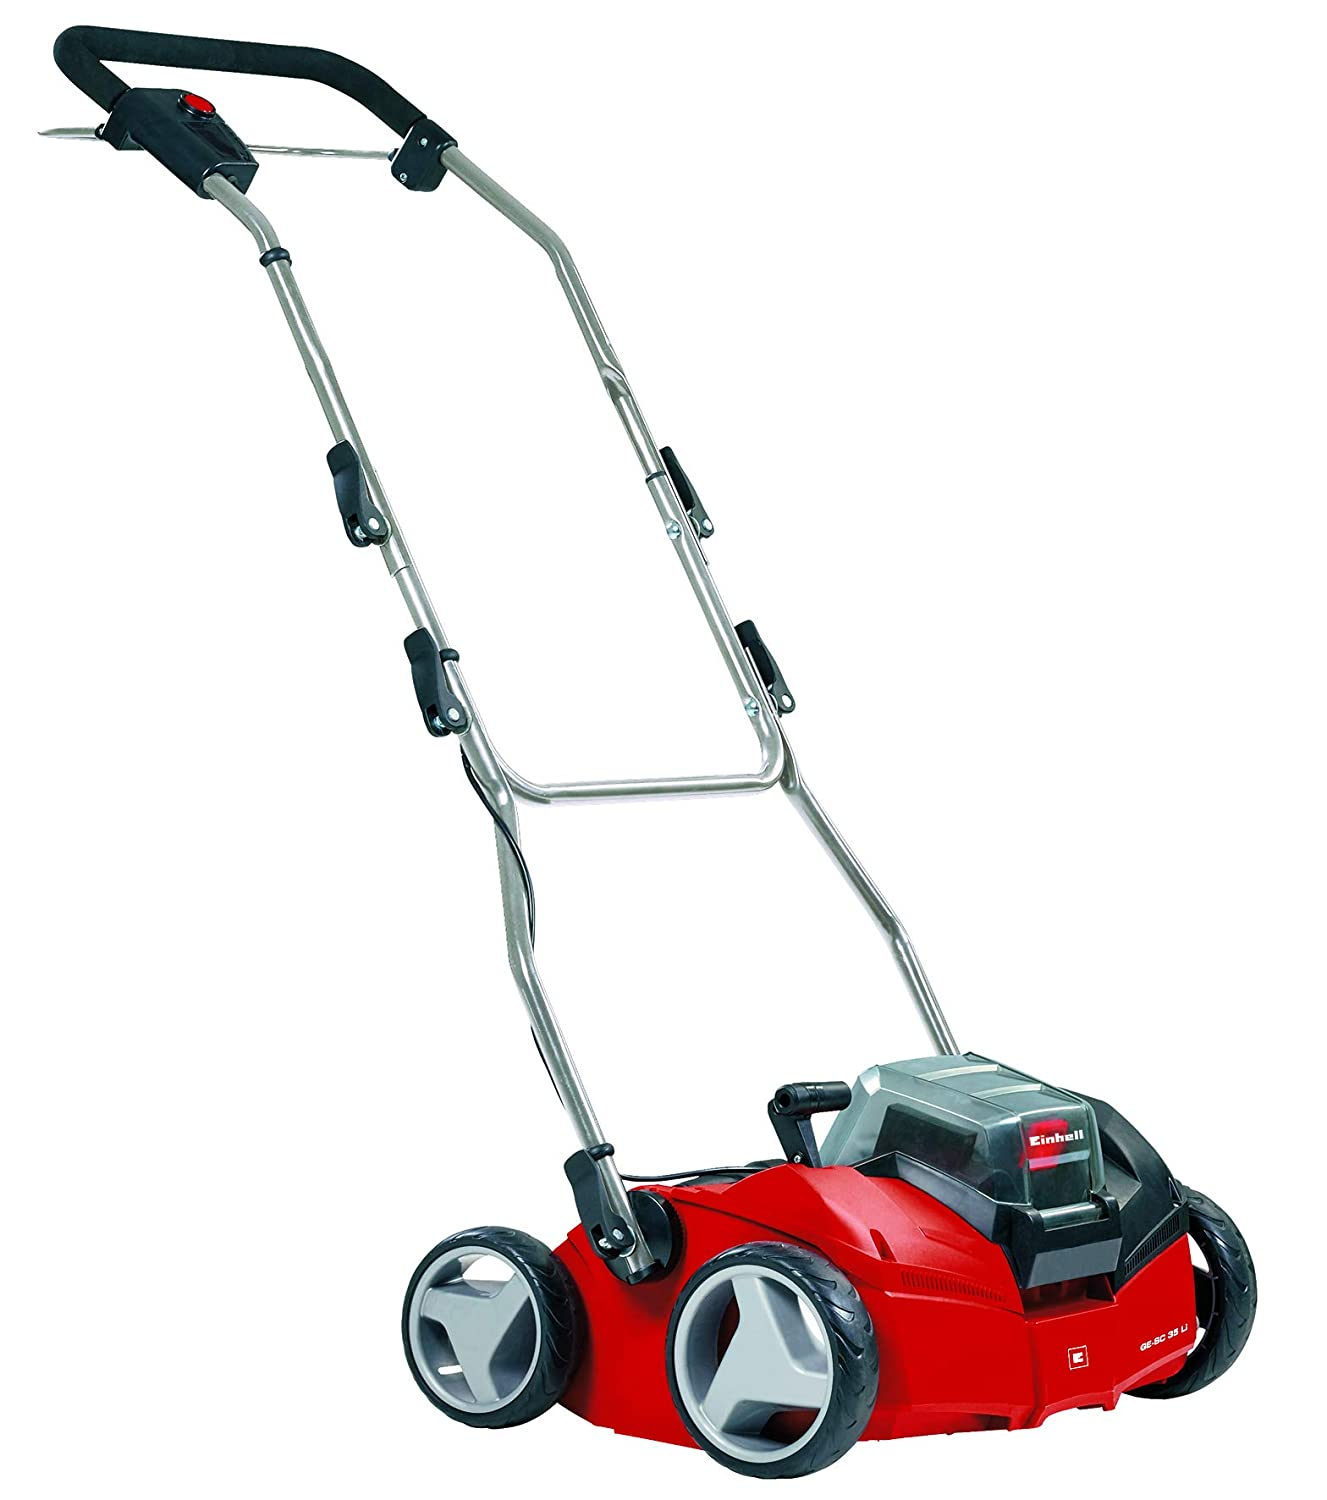 Einhell GE-SC 35 Li Solo Power X-Change 36 V Cordless Lithium-Ion Scarifier and Lawn Aerator (2 x 18 V, Working Width 350 mm, Wheel Diameter Front/Rear 175/152 mm, Without Battery and Charger) - Red 3420650